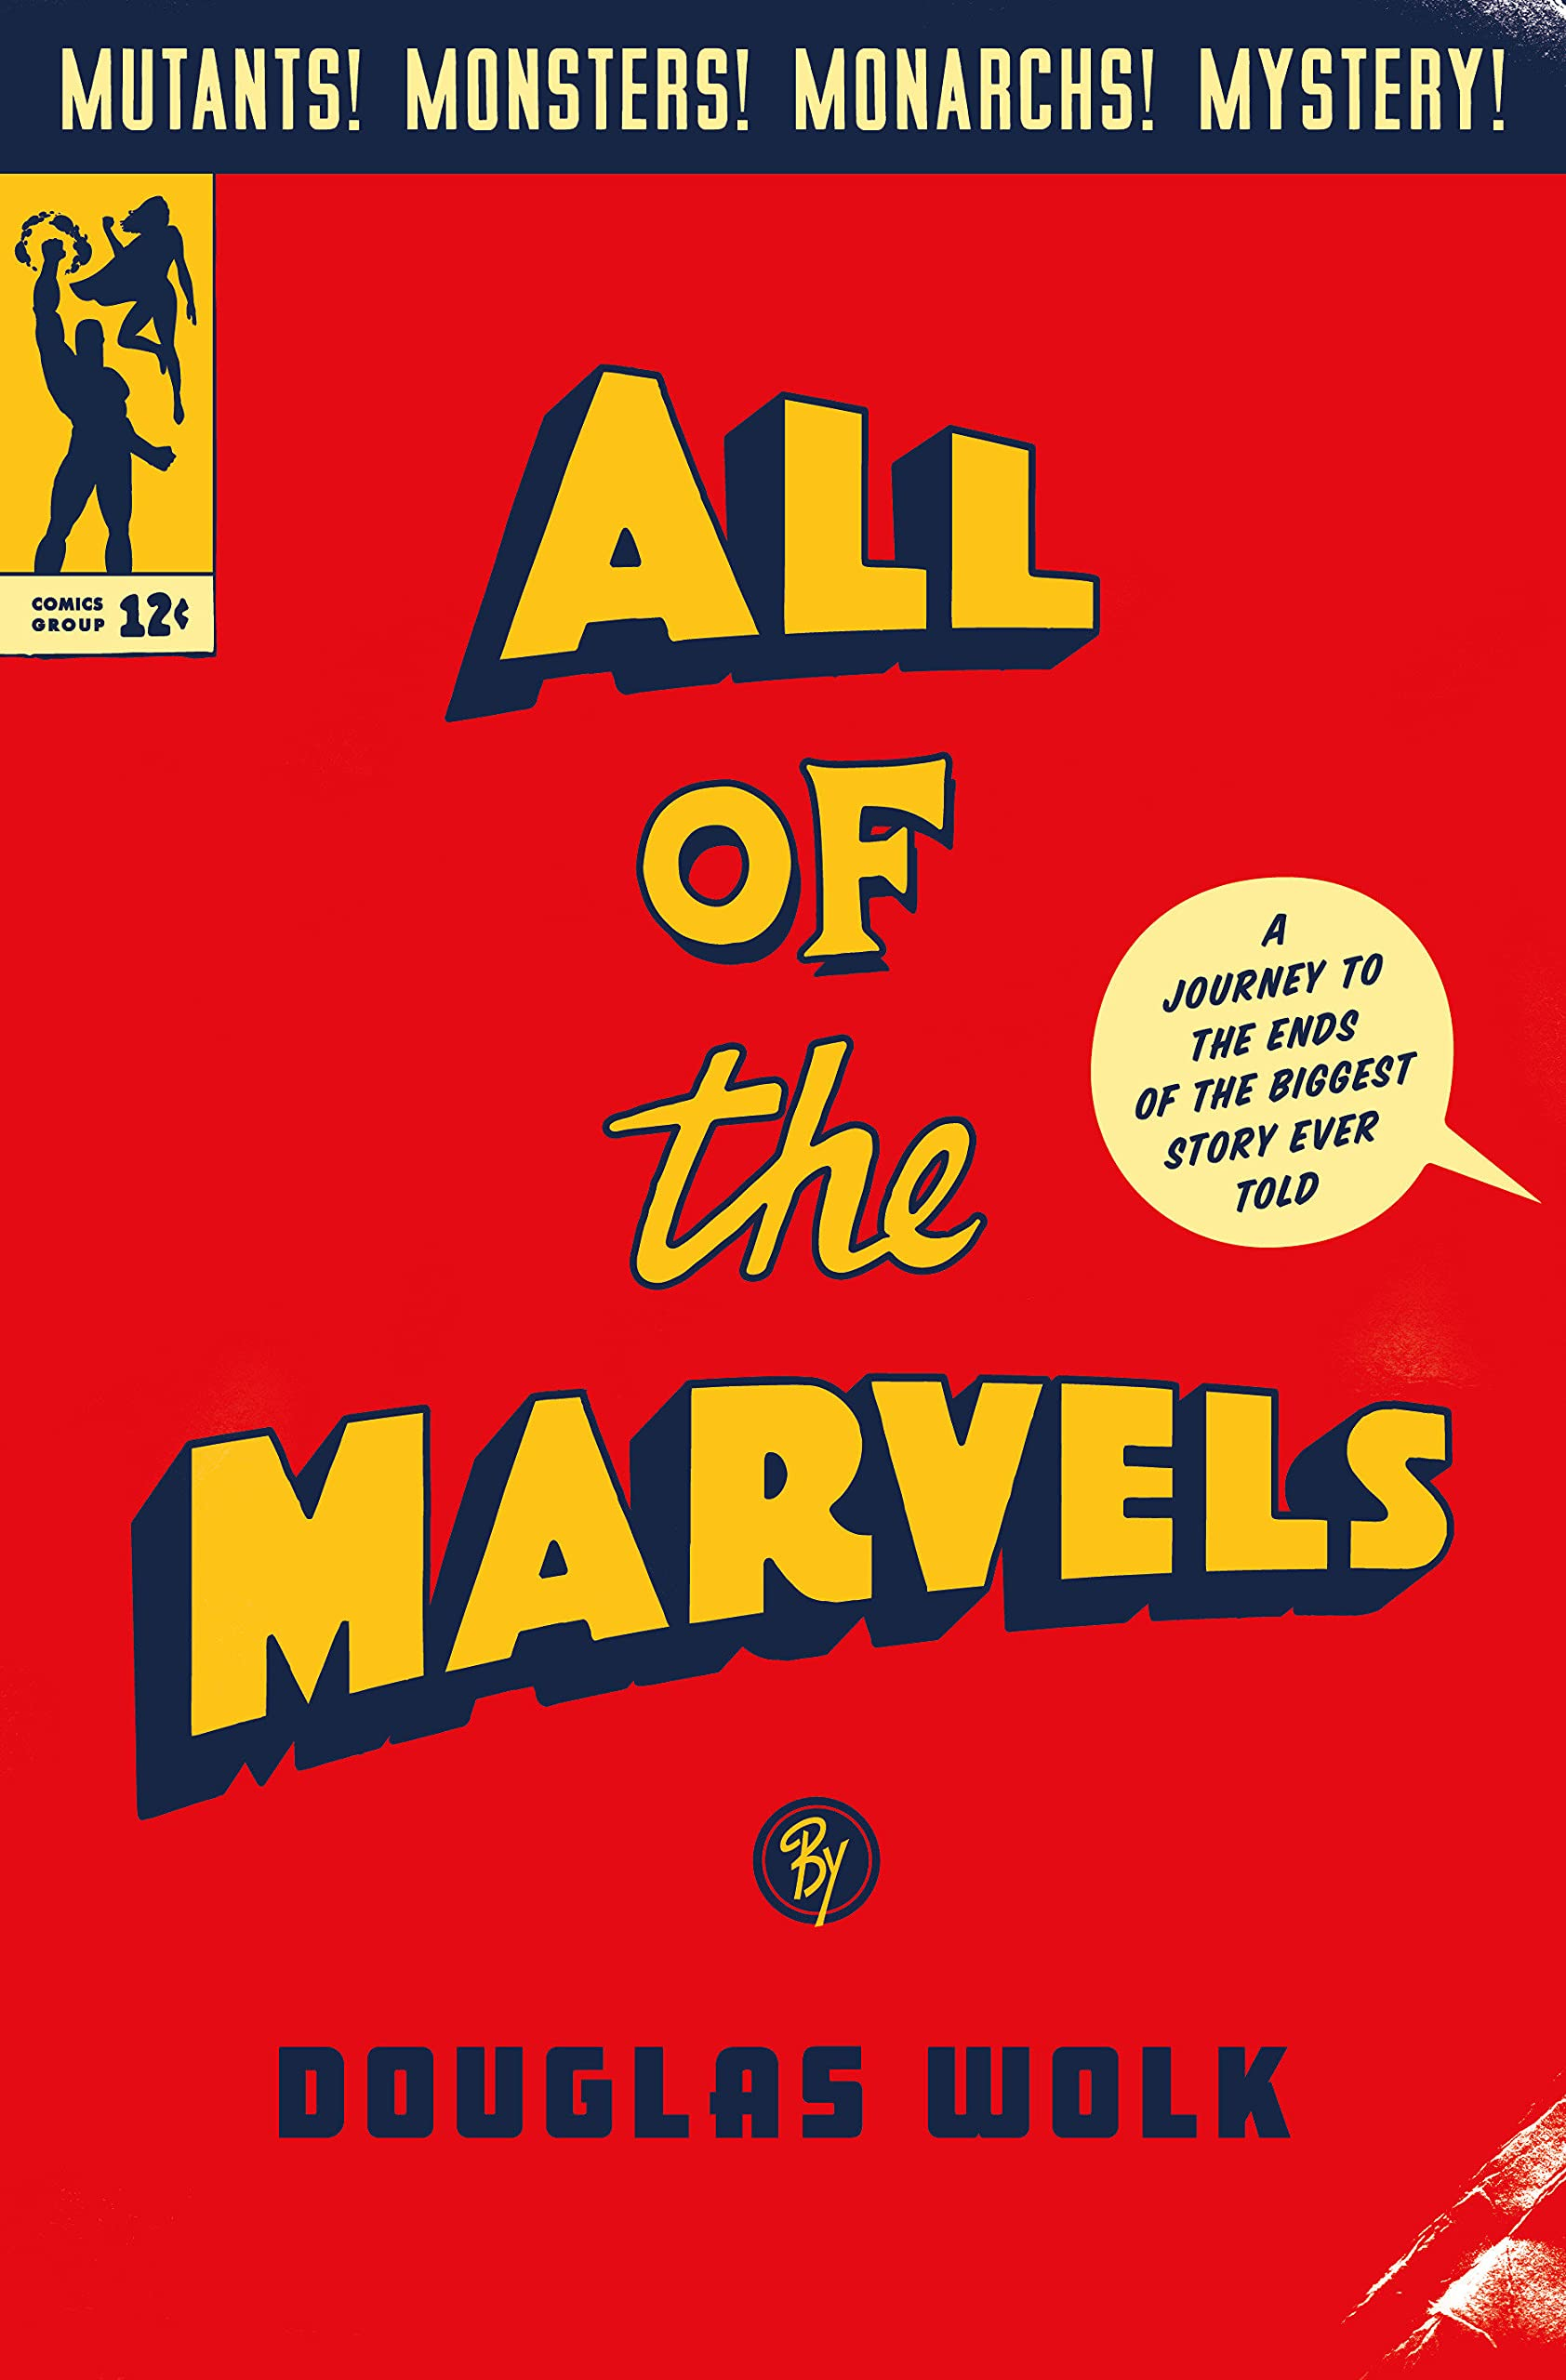 Call For Comments: All of the Marvels